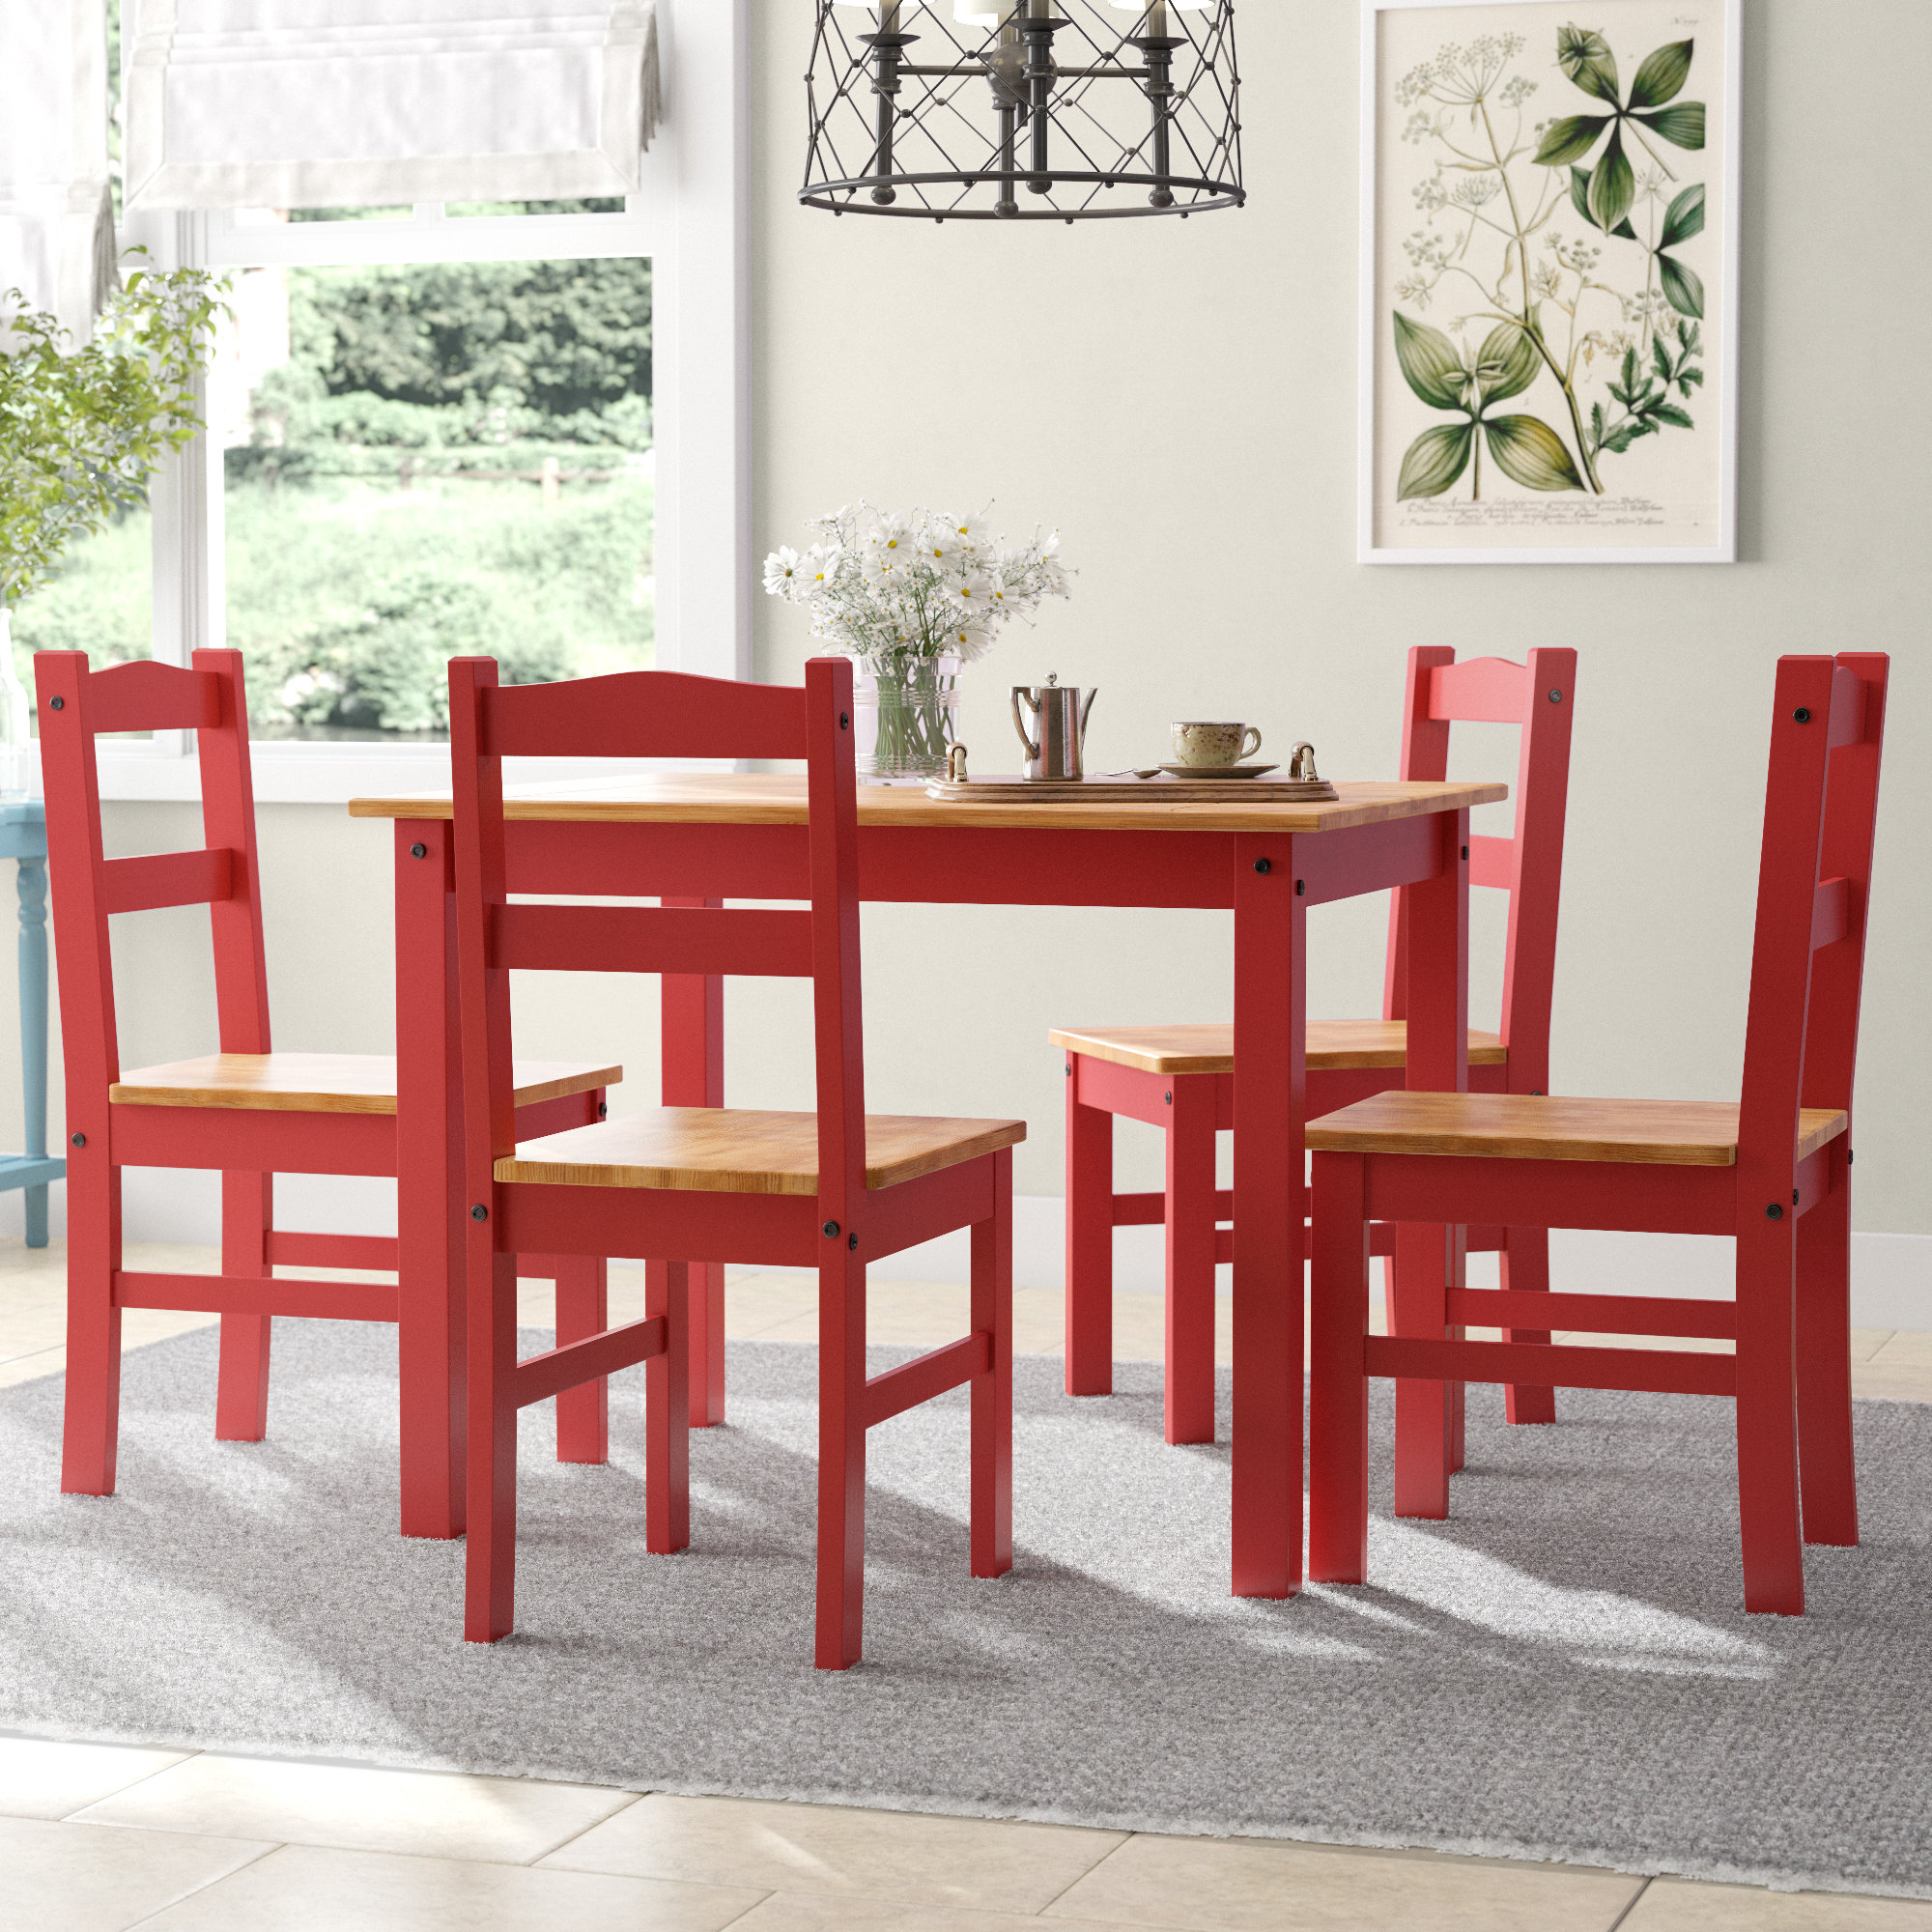 Rodgers 5 Piece Solid Wood Dining Set Throughout Recent Yedinak 5 Piece Solid Wood Dining Sets (View 7 of 20)